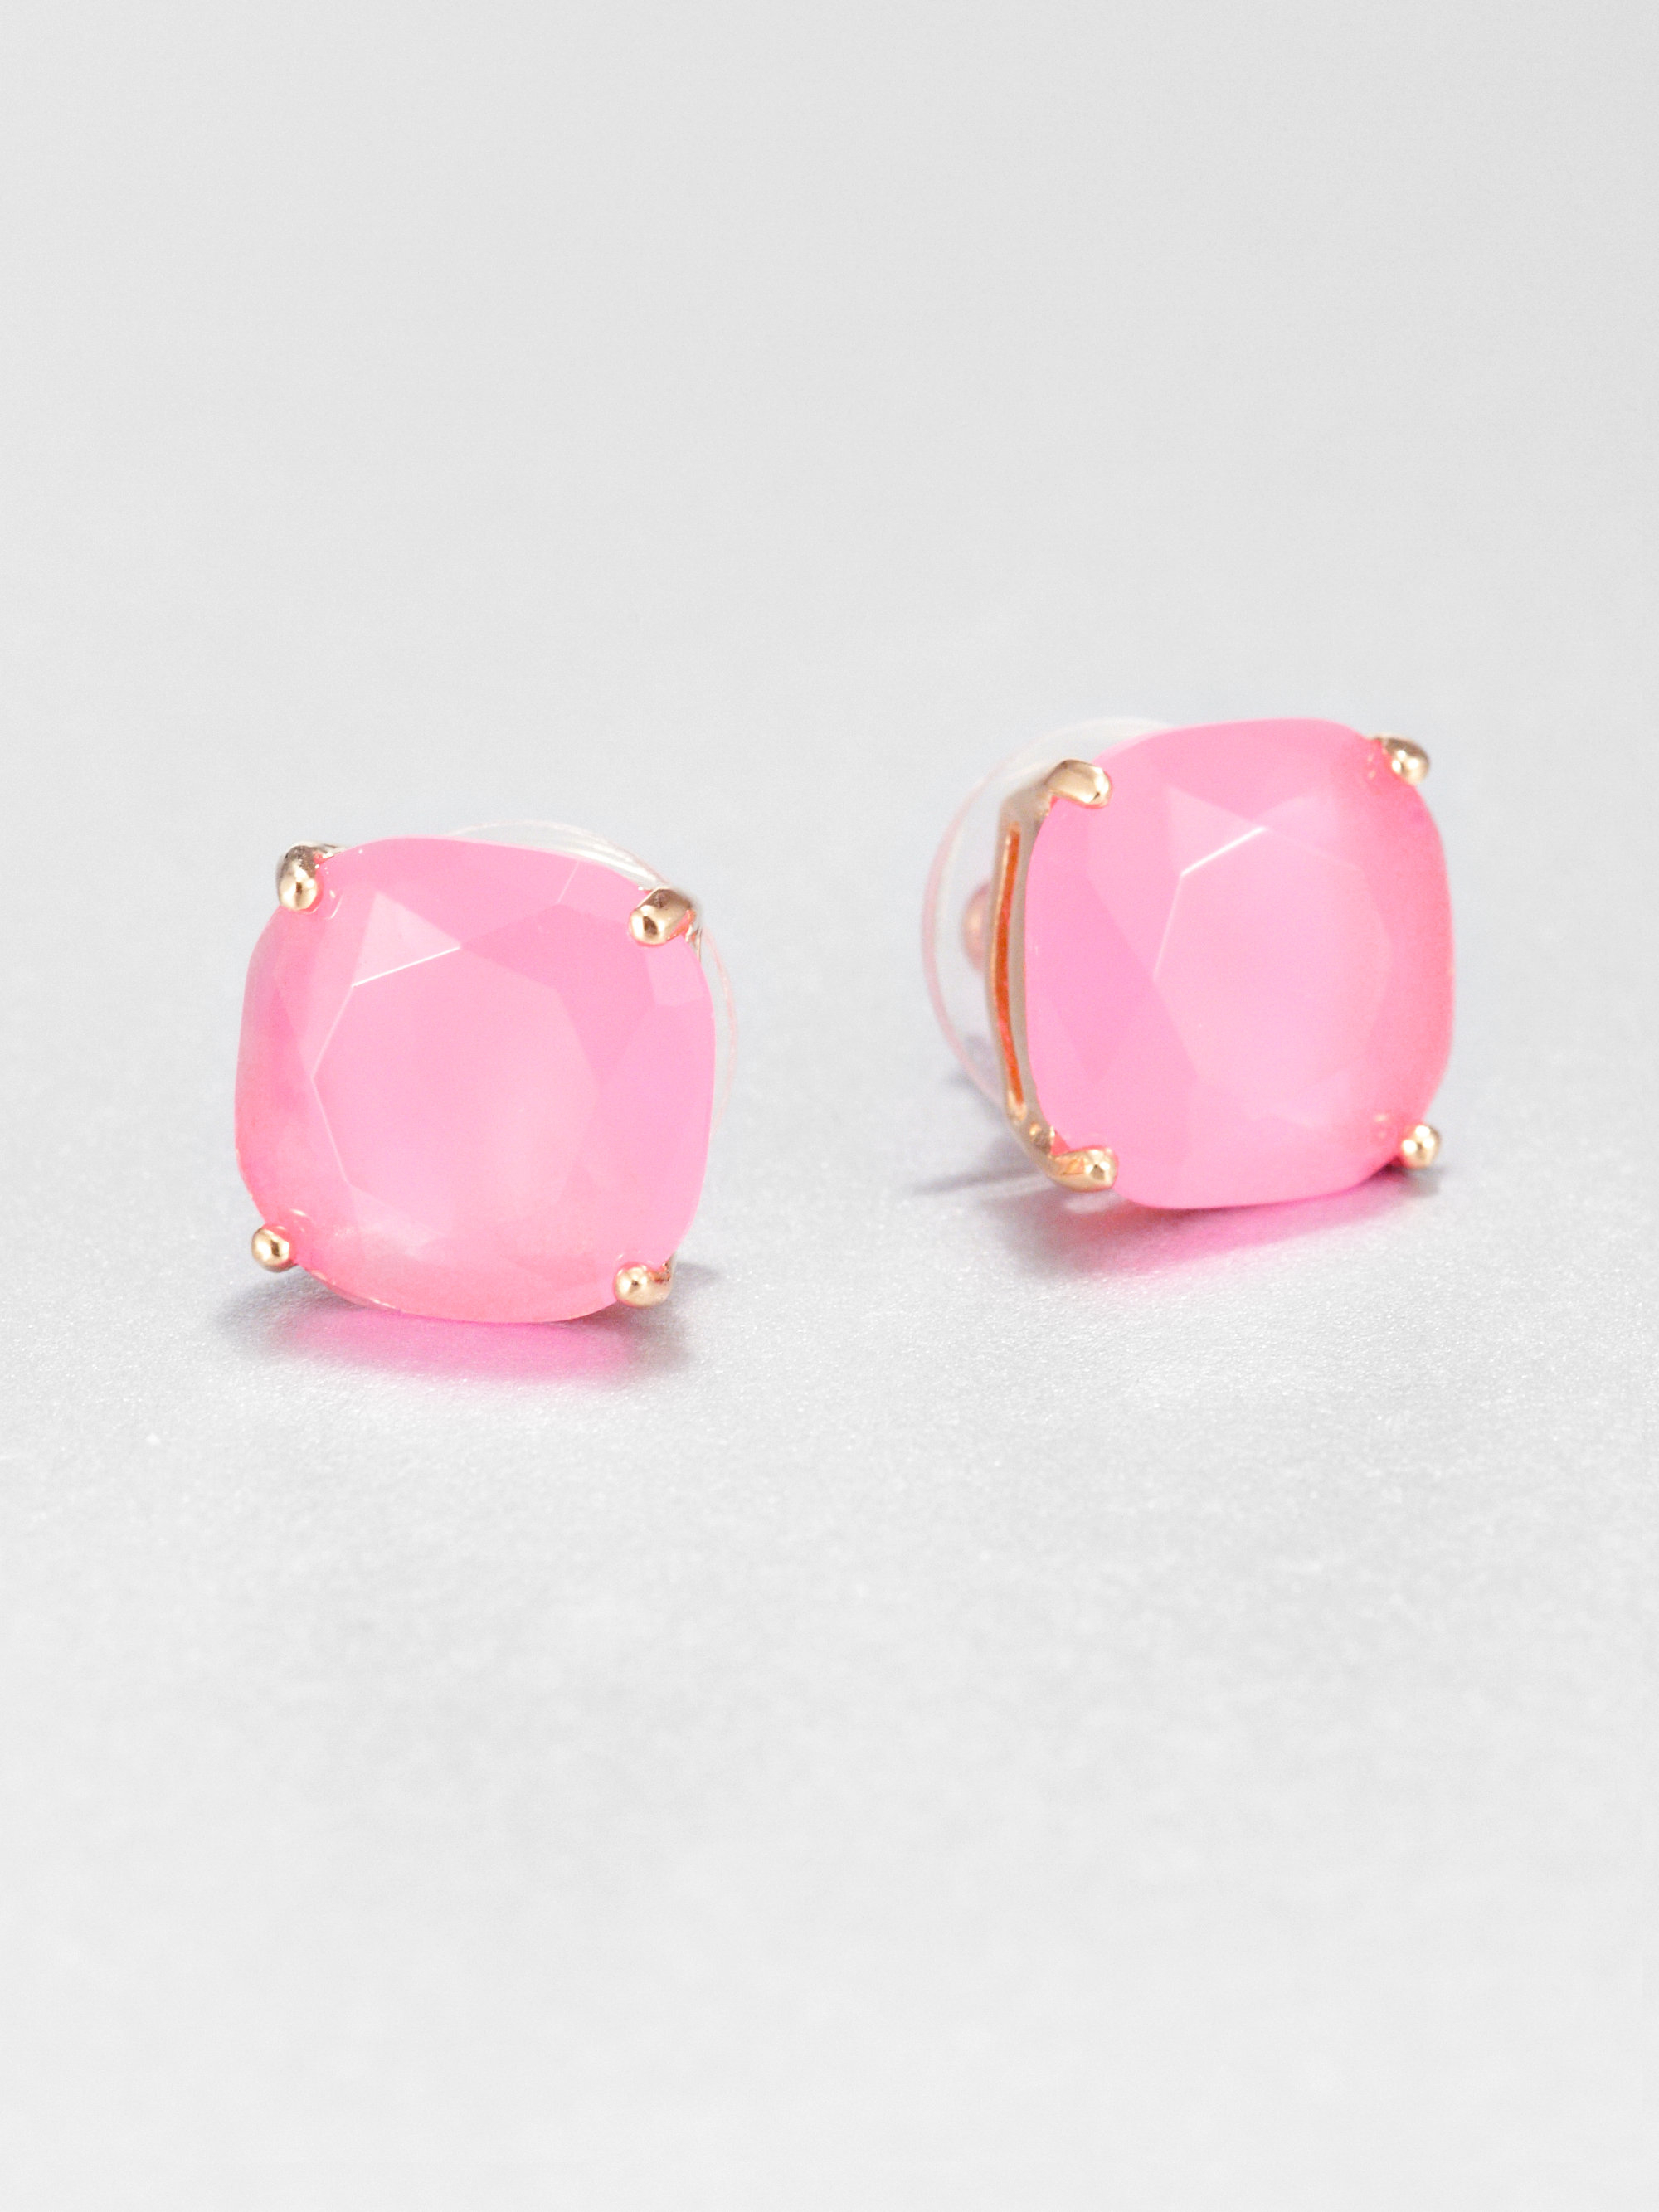 Kate spade new york Faceted Square Stud Earrings in Pink | Lyst